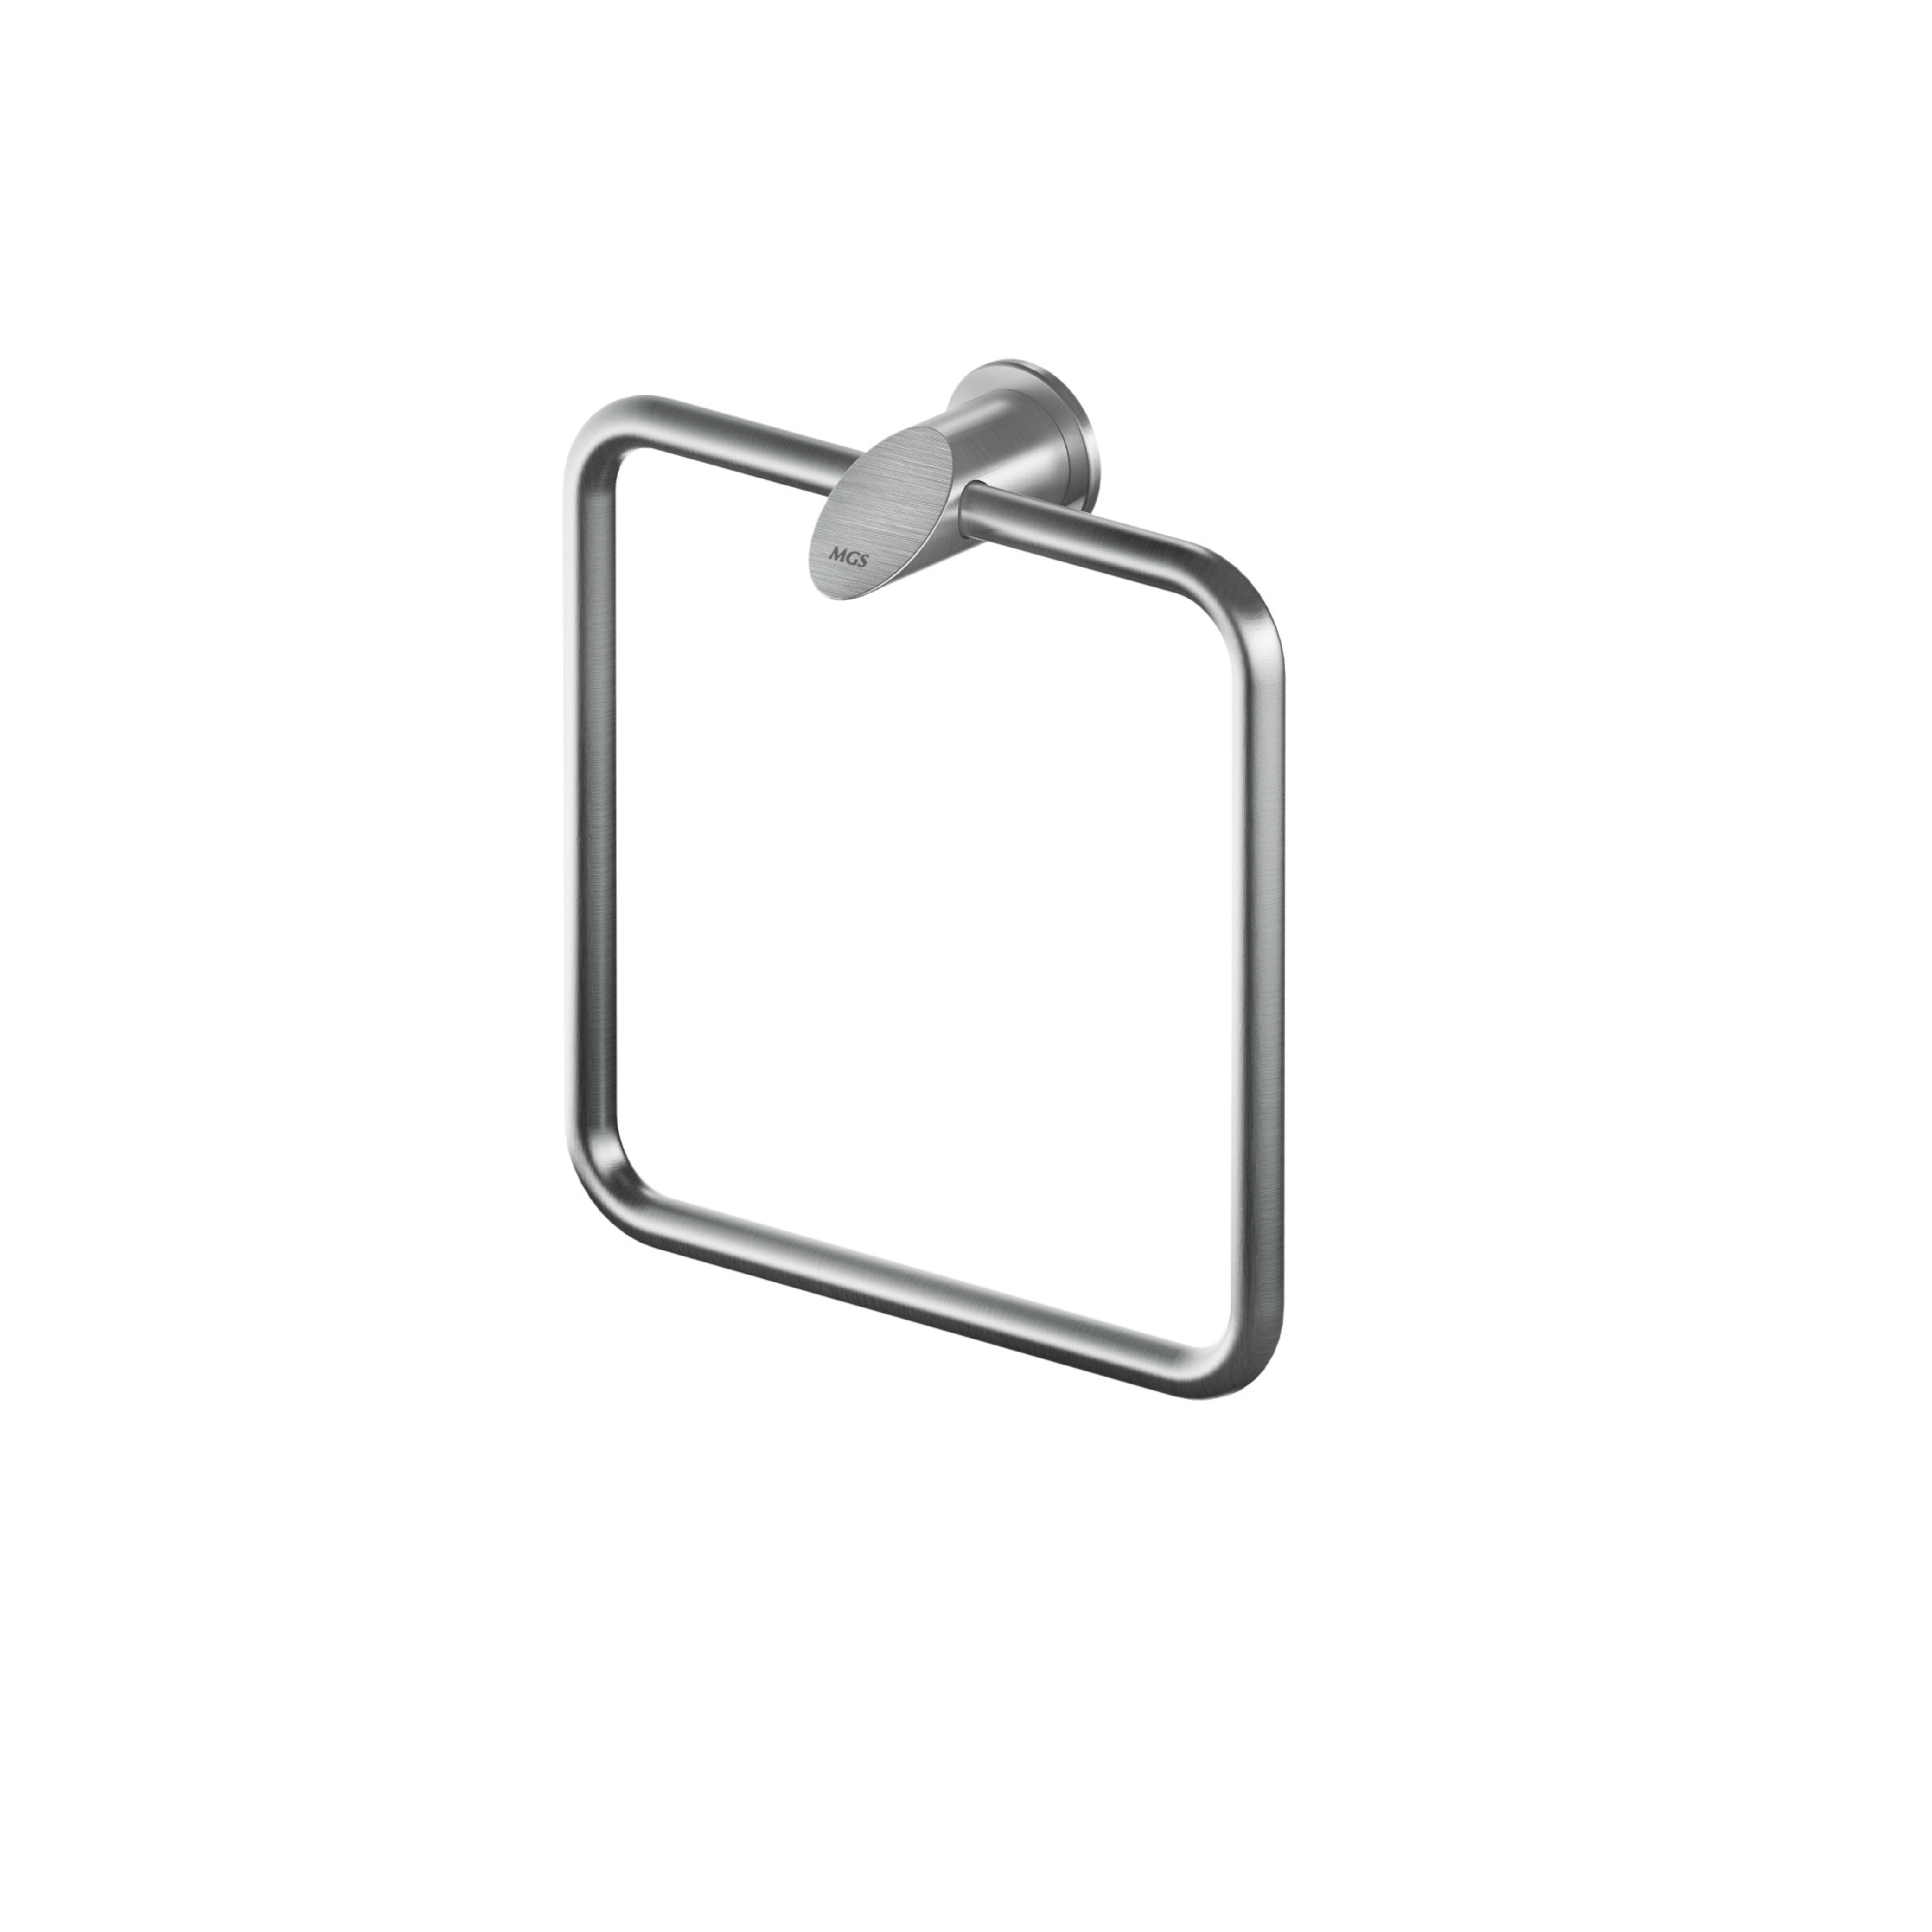 MGS AC932 Square Towel Holder - matte stainless